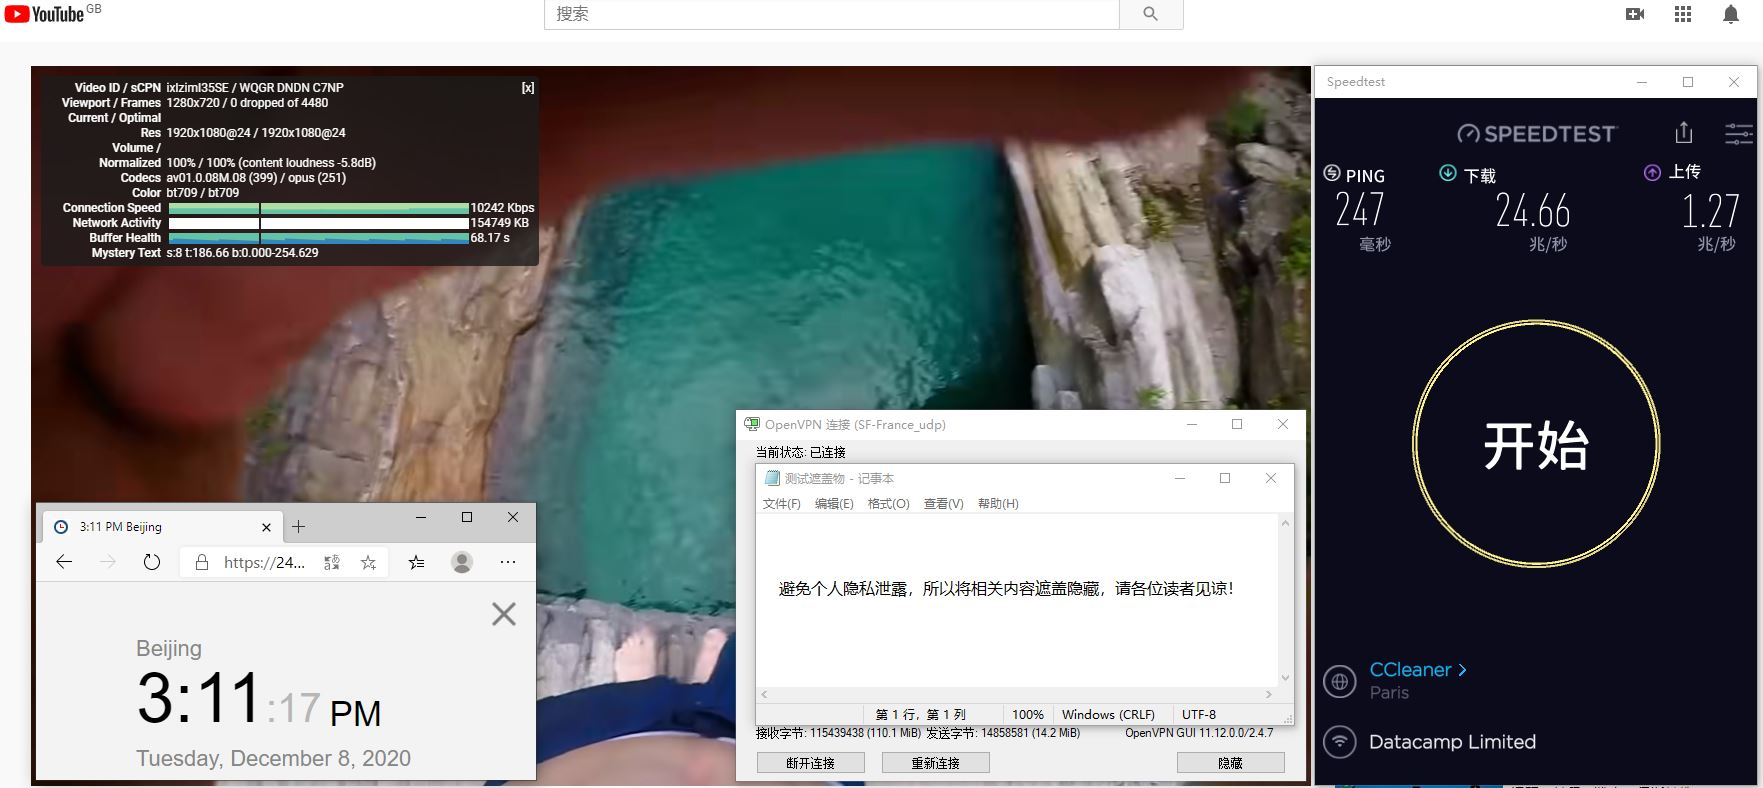 Windows10 SurfsharkVPN OpenVPN Gui France 服务器 中国VPN 翻墙 科学上网 测试 - 20201208